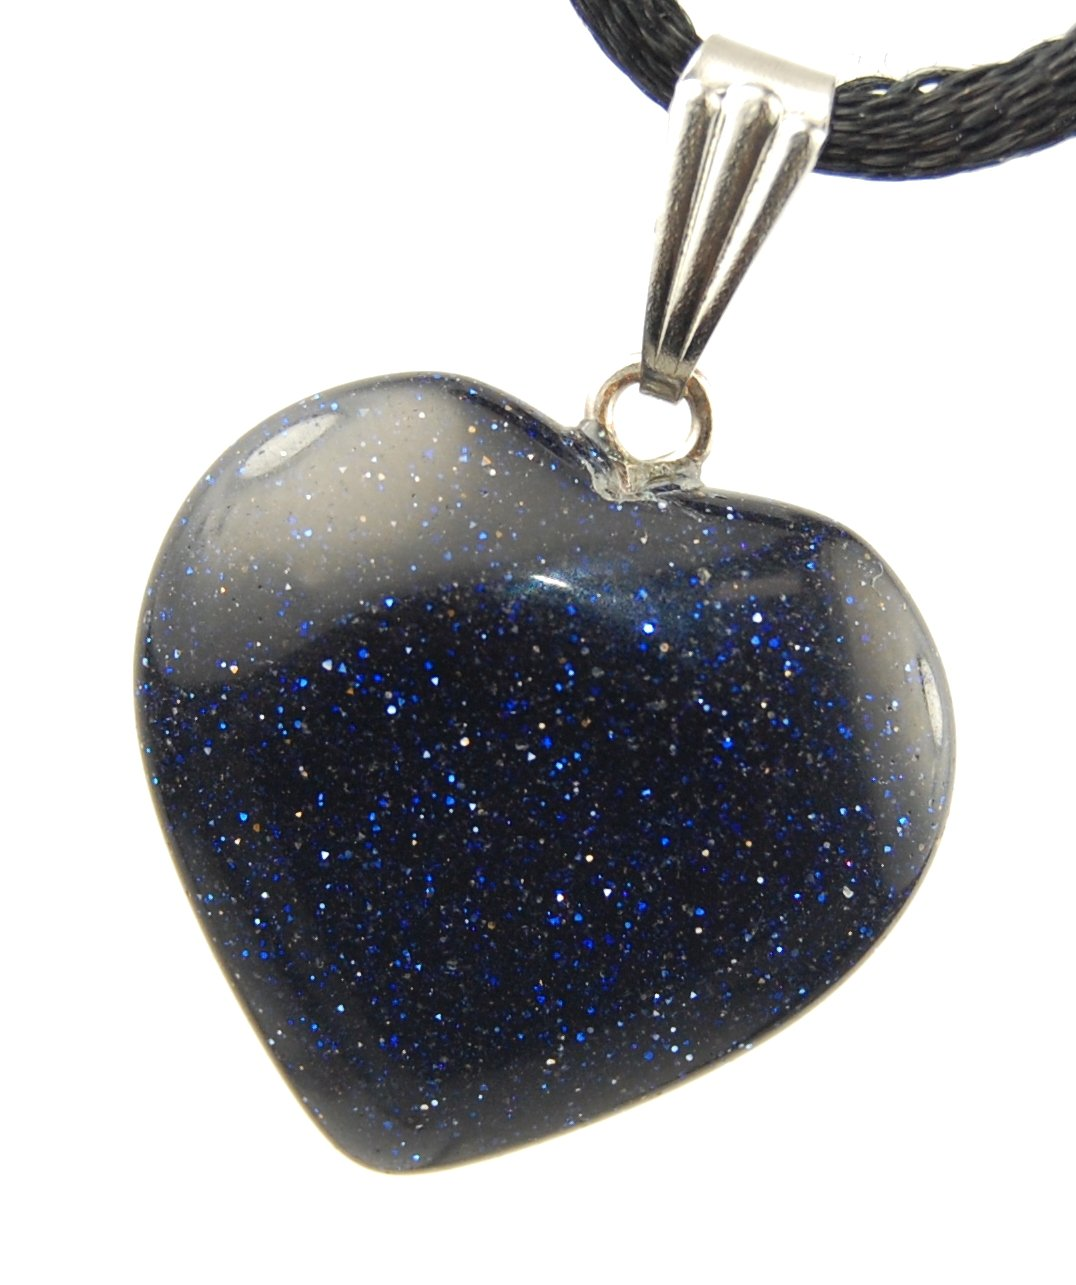 Big Heart Collection - 20mm Classic Galaxy Goldstone Black Blue Sparkle, 20'' Adjustable Soft Black Poly Woven Washable Cord Stainless Bail - Natural Crystal Gemstone Carved Necklace Charm